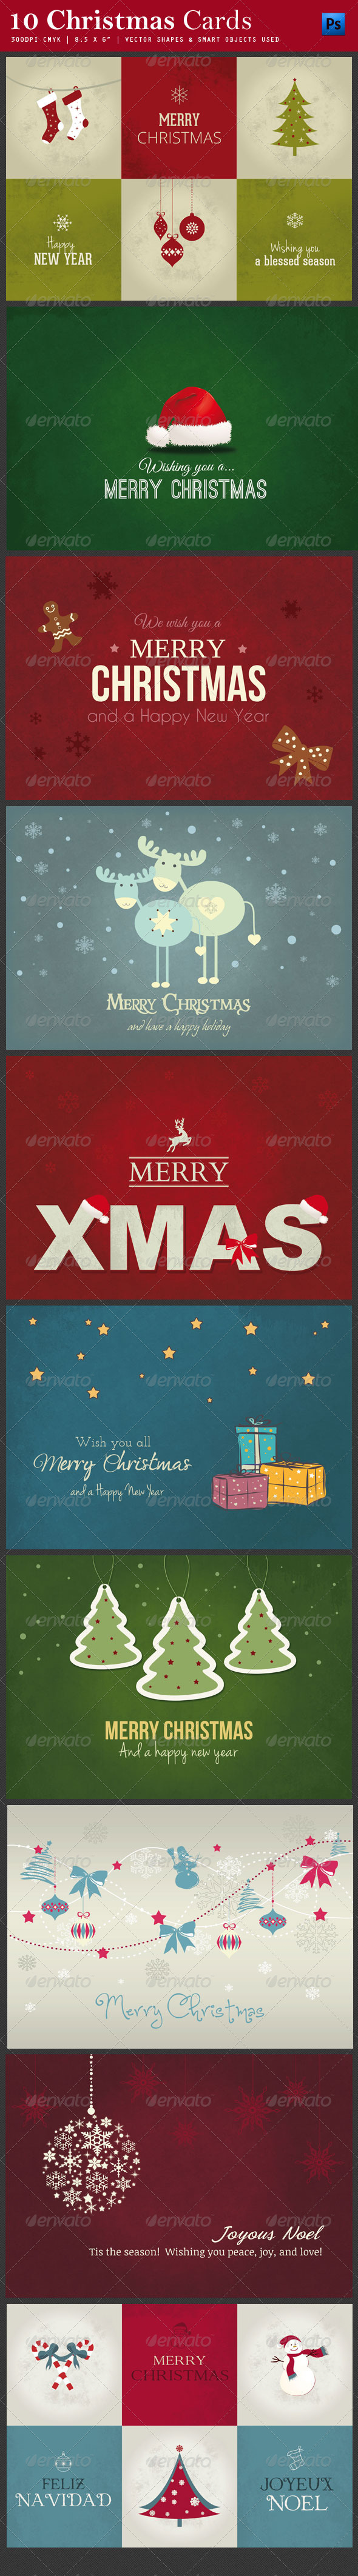 GraphicRiver 10 Christmas Cards PSD 6131761